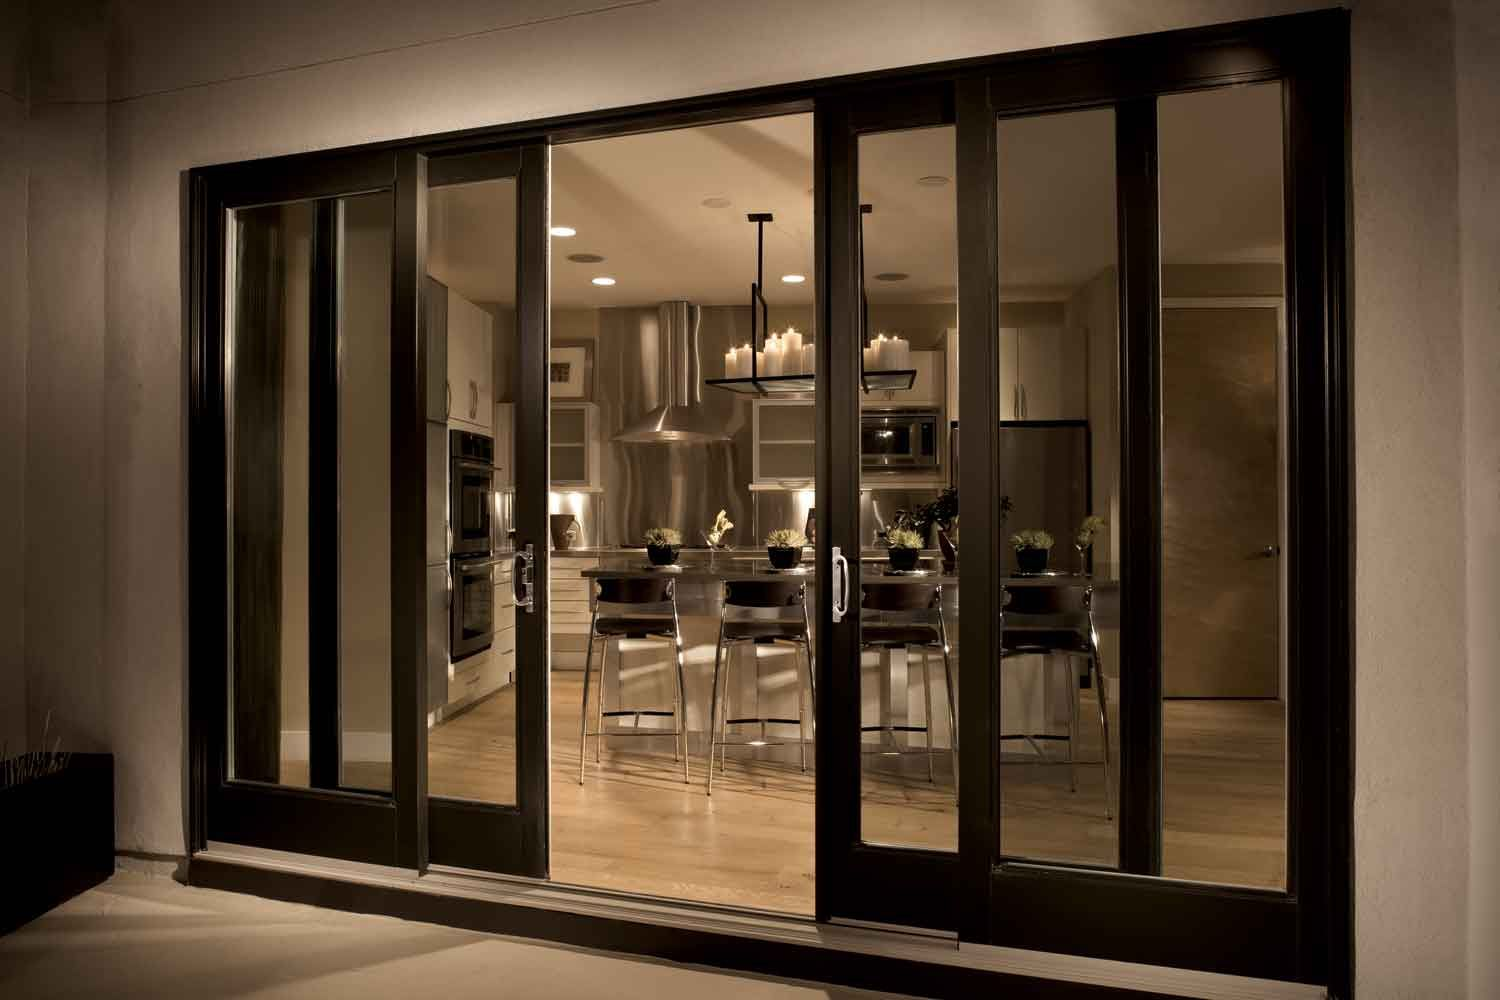 Fiberglass sliding patio doors 2 3 or 4 panel configurations fiberglass sliding patio doors 2 3 or 4 panel configurations planetlyrics Images